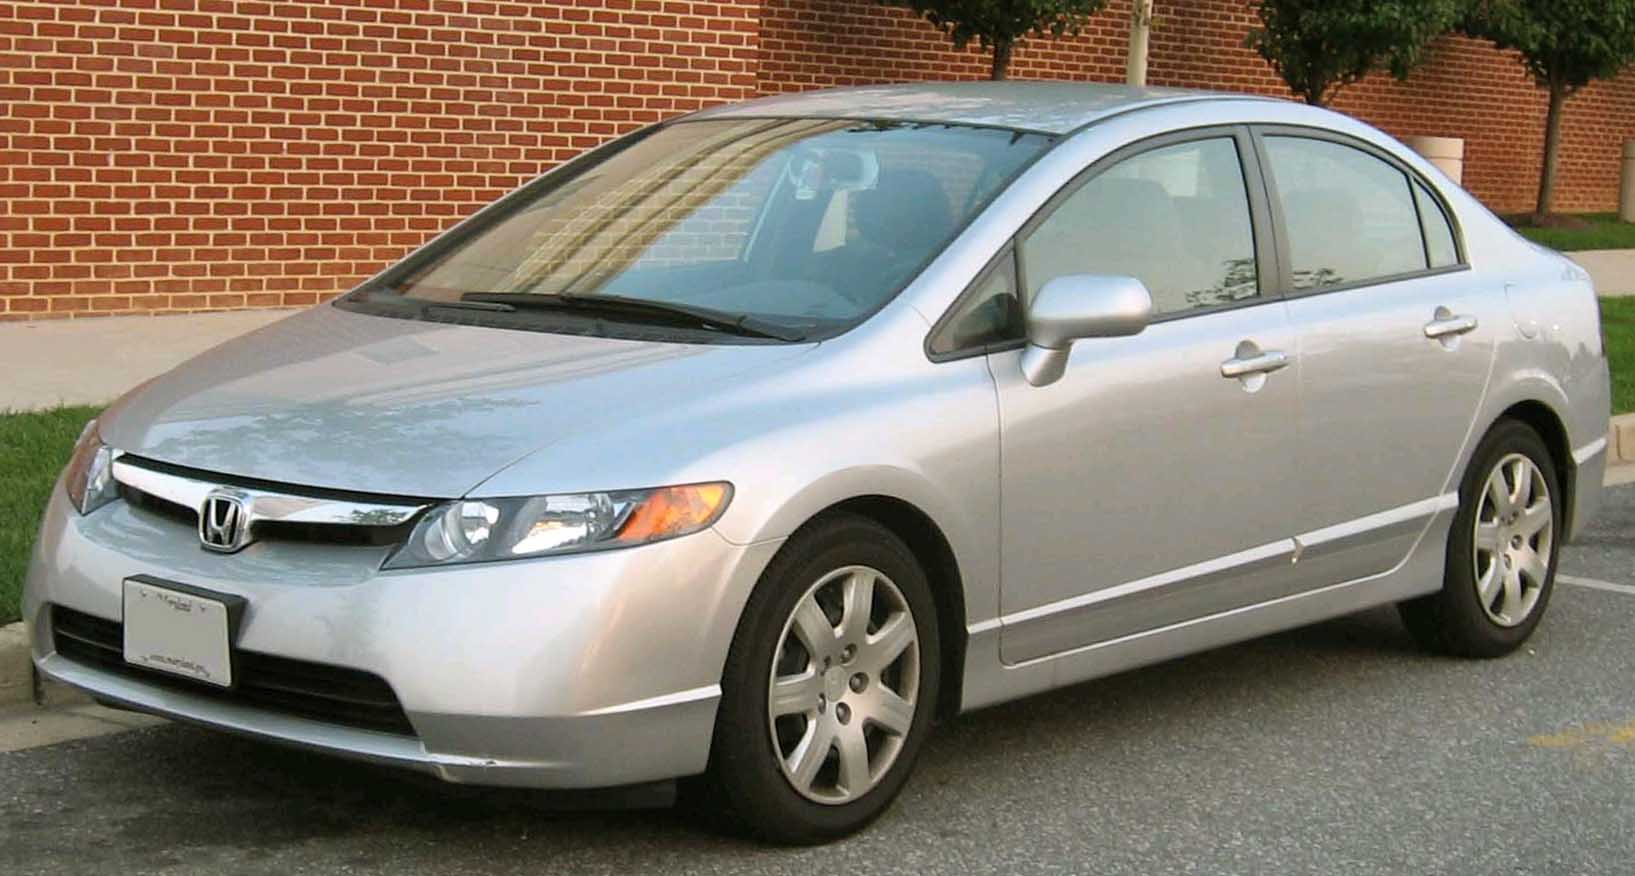 2006 Honda Civic #1